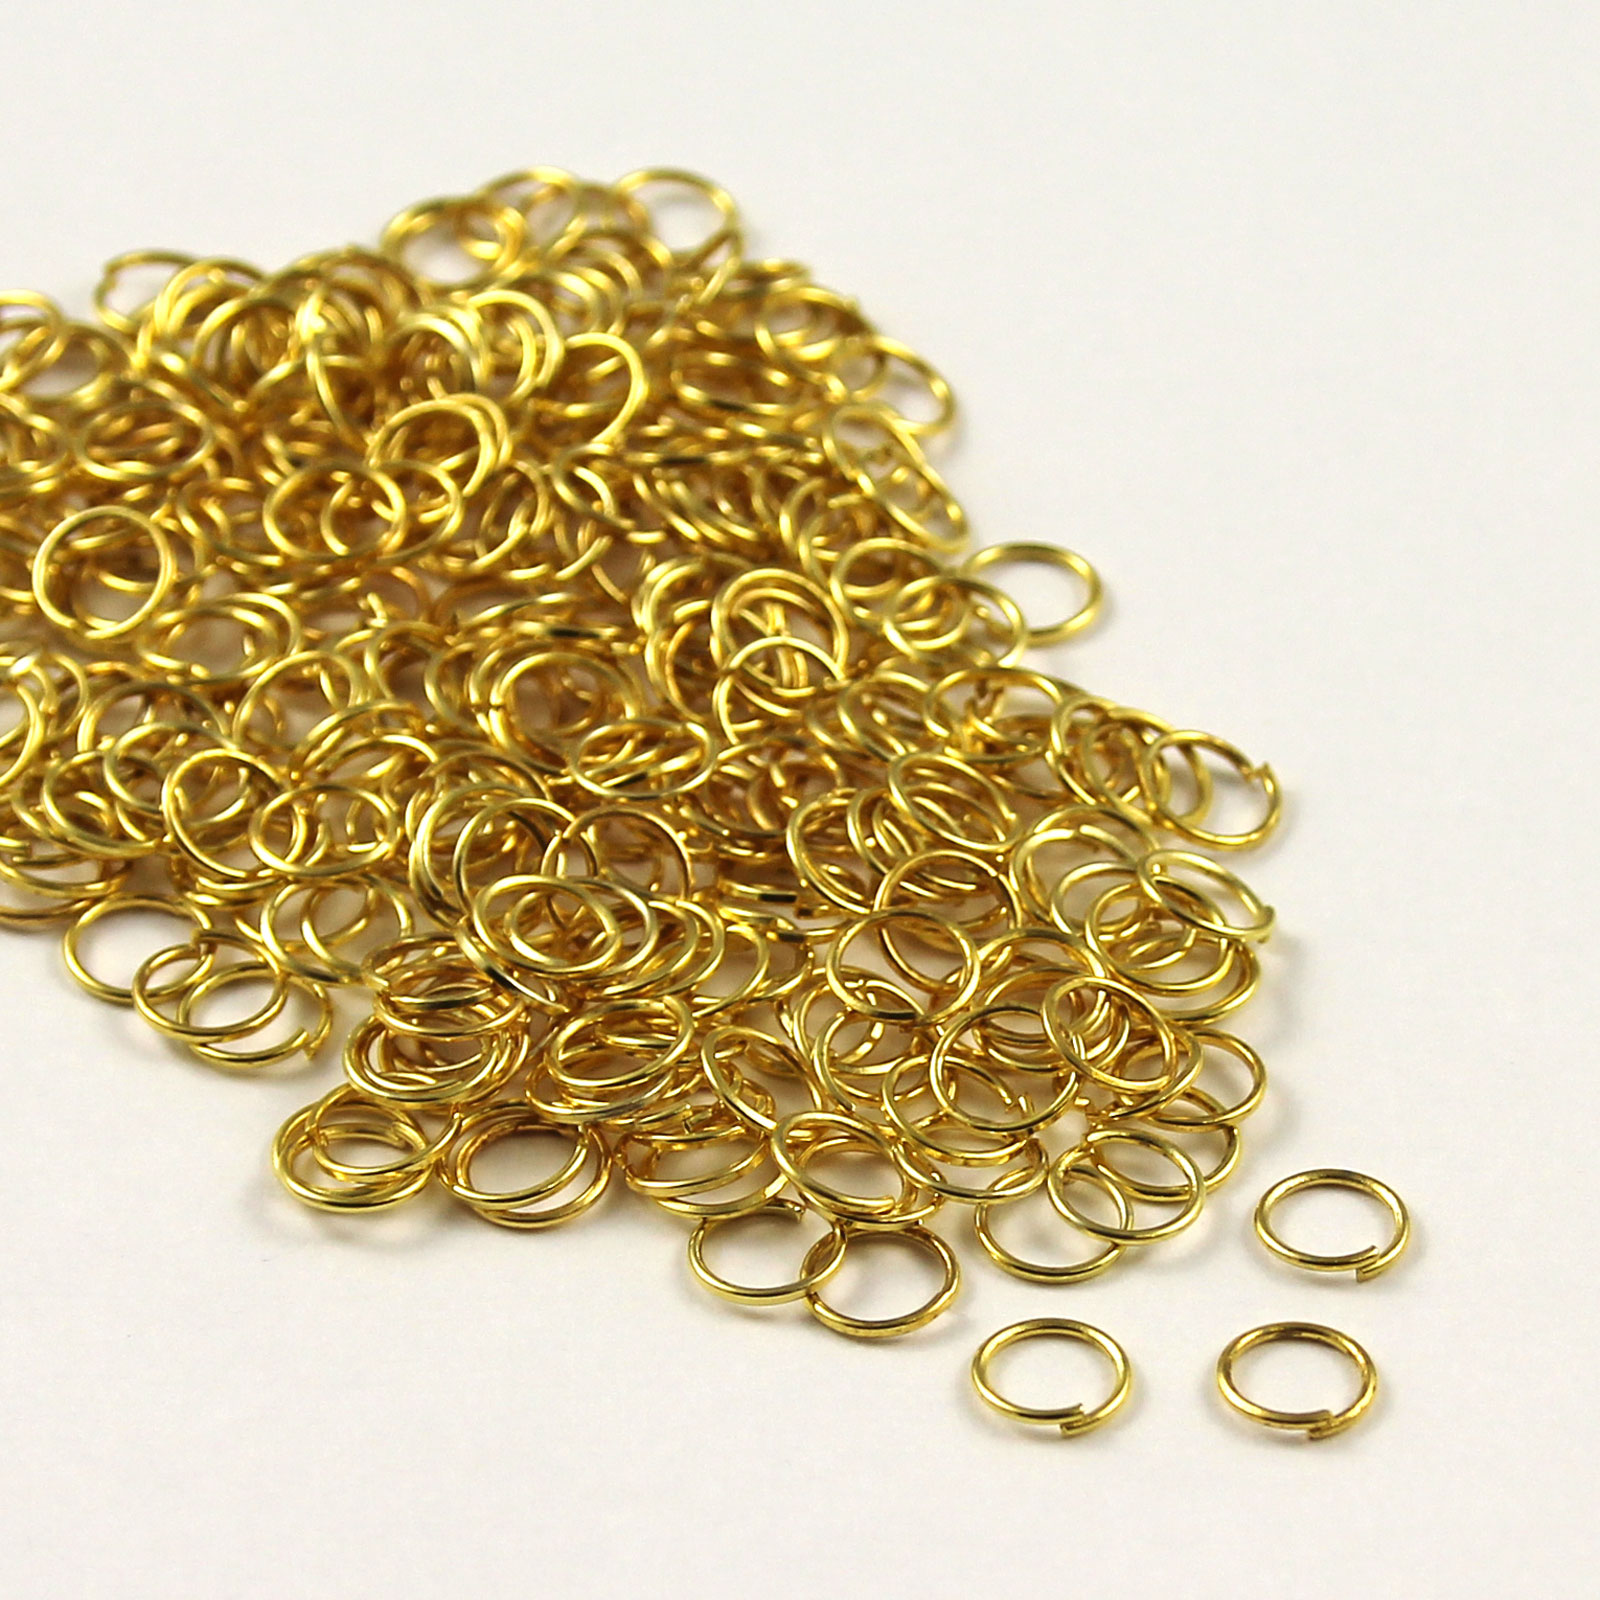 Bronze-Gold-amp-SILVER-PLATED-Metal-JUMP-RINGS-4-5-6-7-8-9-10mm